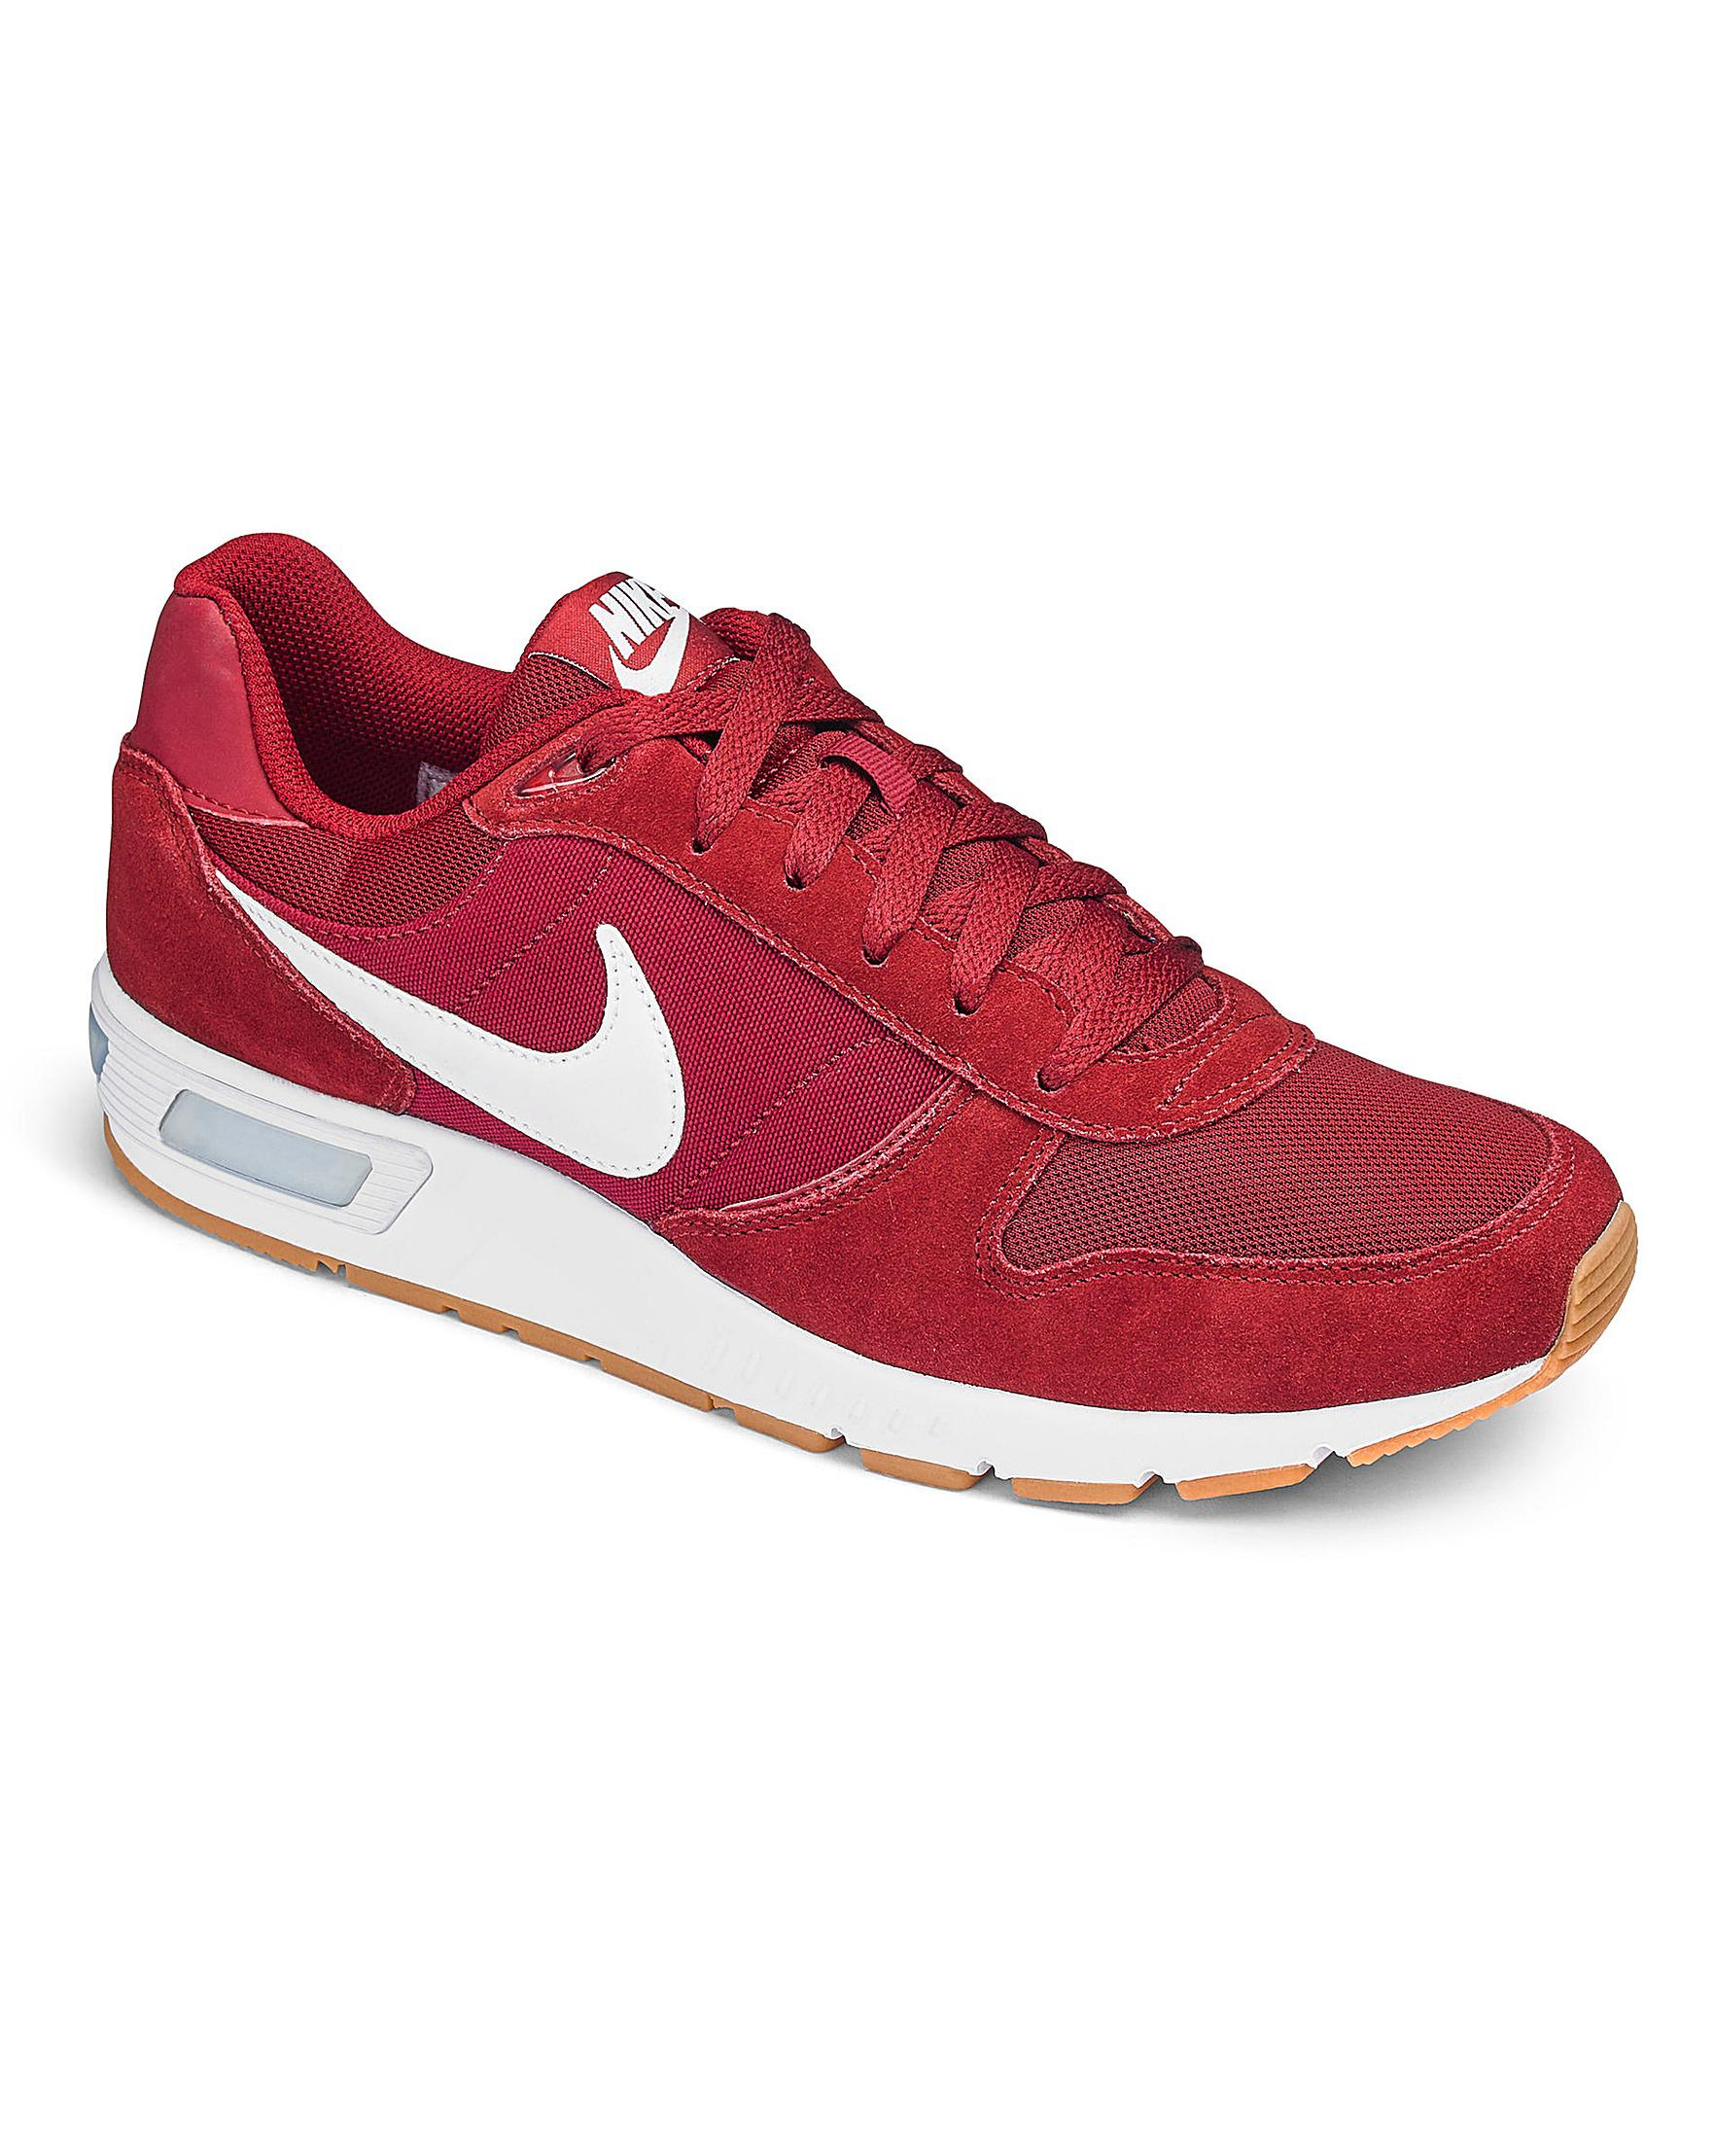 Nike - Red Nightgazer Trainers for Men - Lyst. View Fullscreen